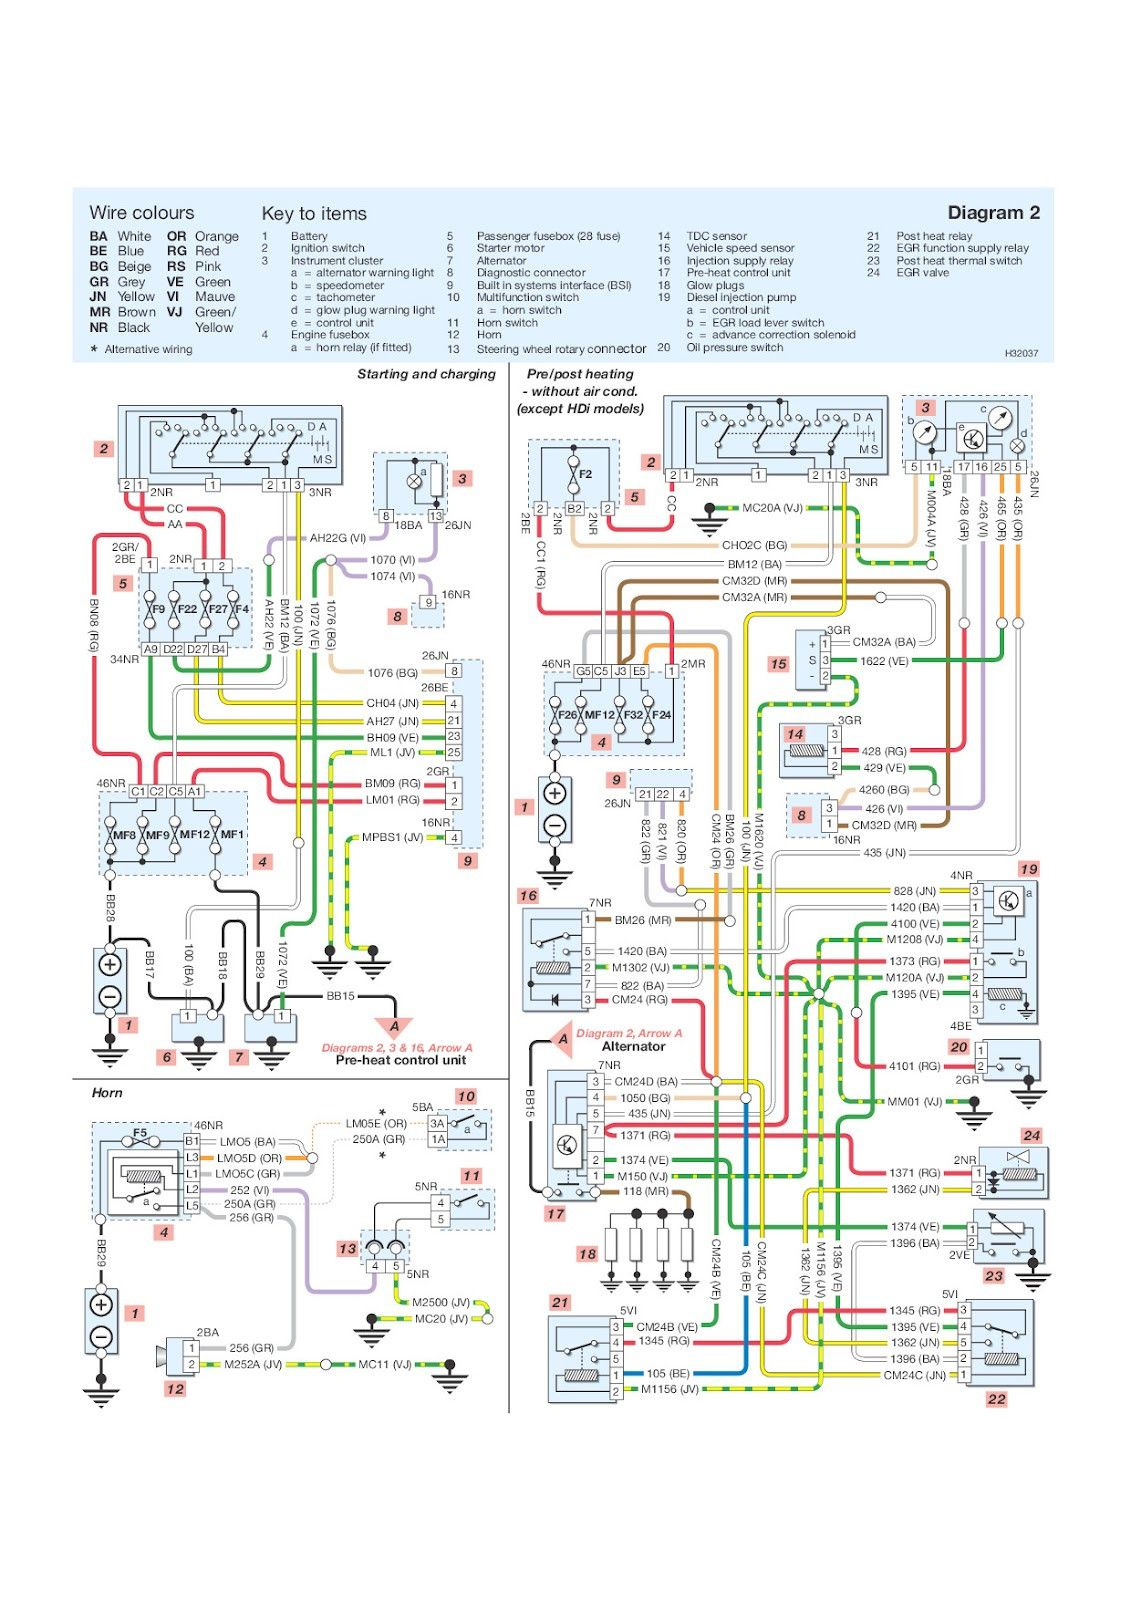 ferrari wiring diagram free download schematic [ 1131 x 1600 Pixel ]